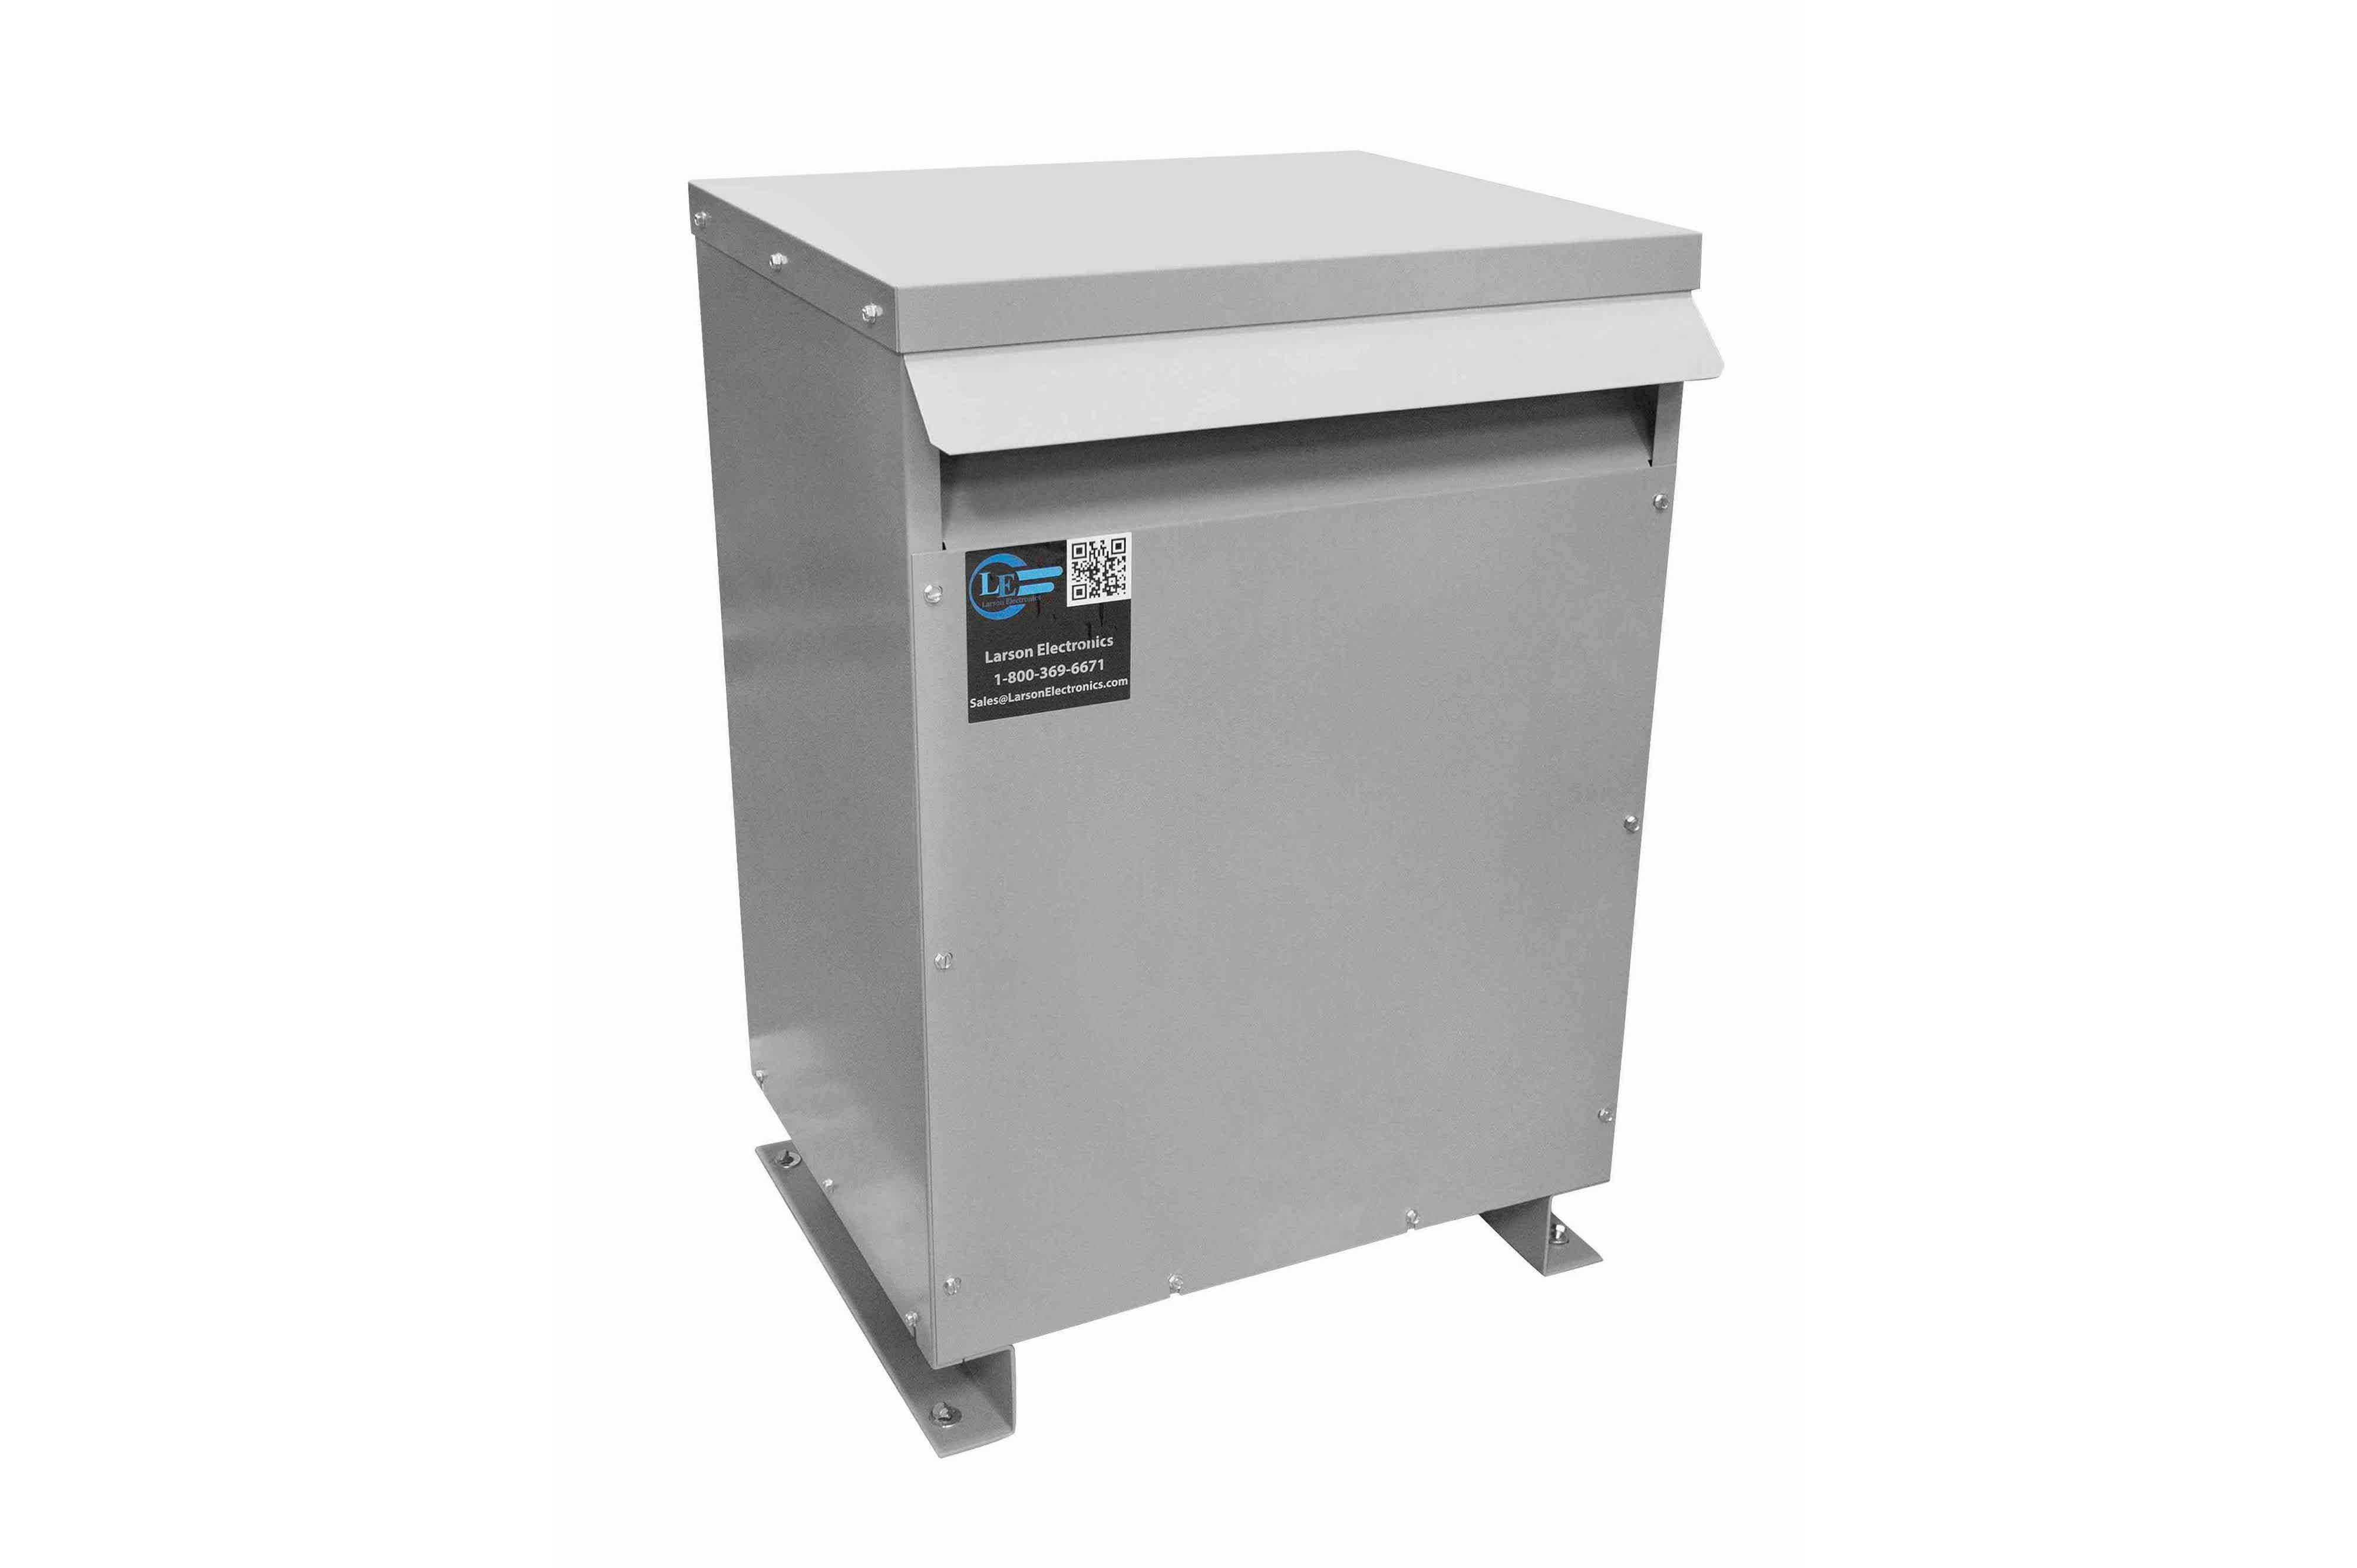 18 kVA 3PH Isolation Transformer, 575V Wye Primary, 400Y/231 Wye-N Secondary, N3R, Ventilated, 60 Hz